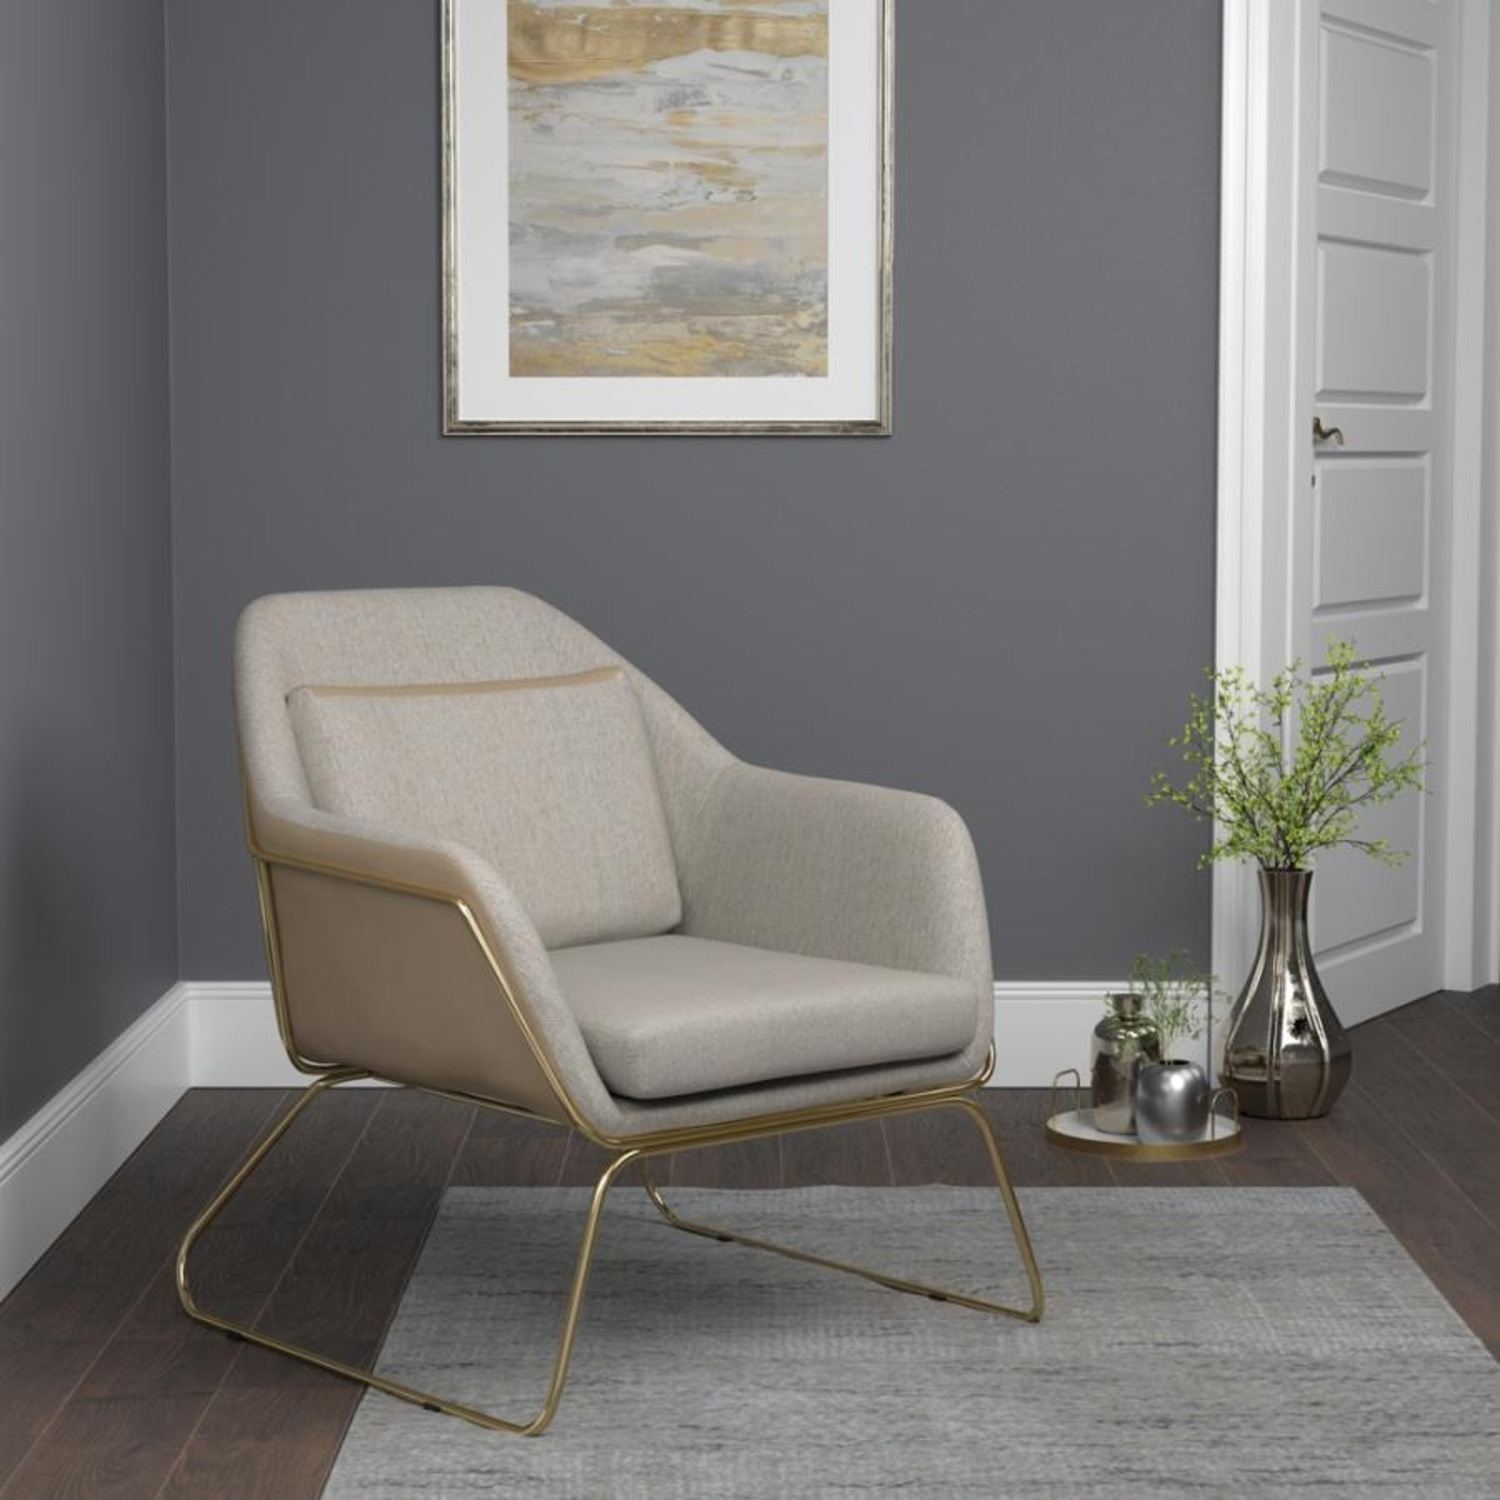 Accent Chair In Linen-Like Beige Fabric - image-2